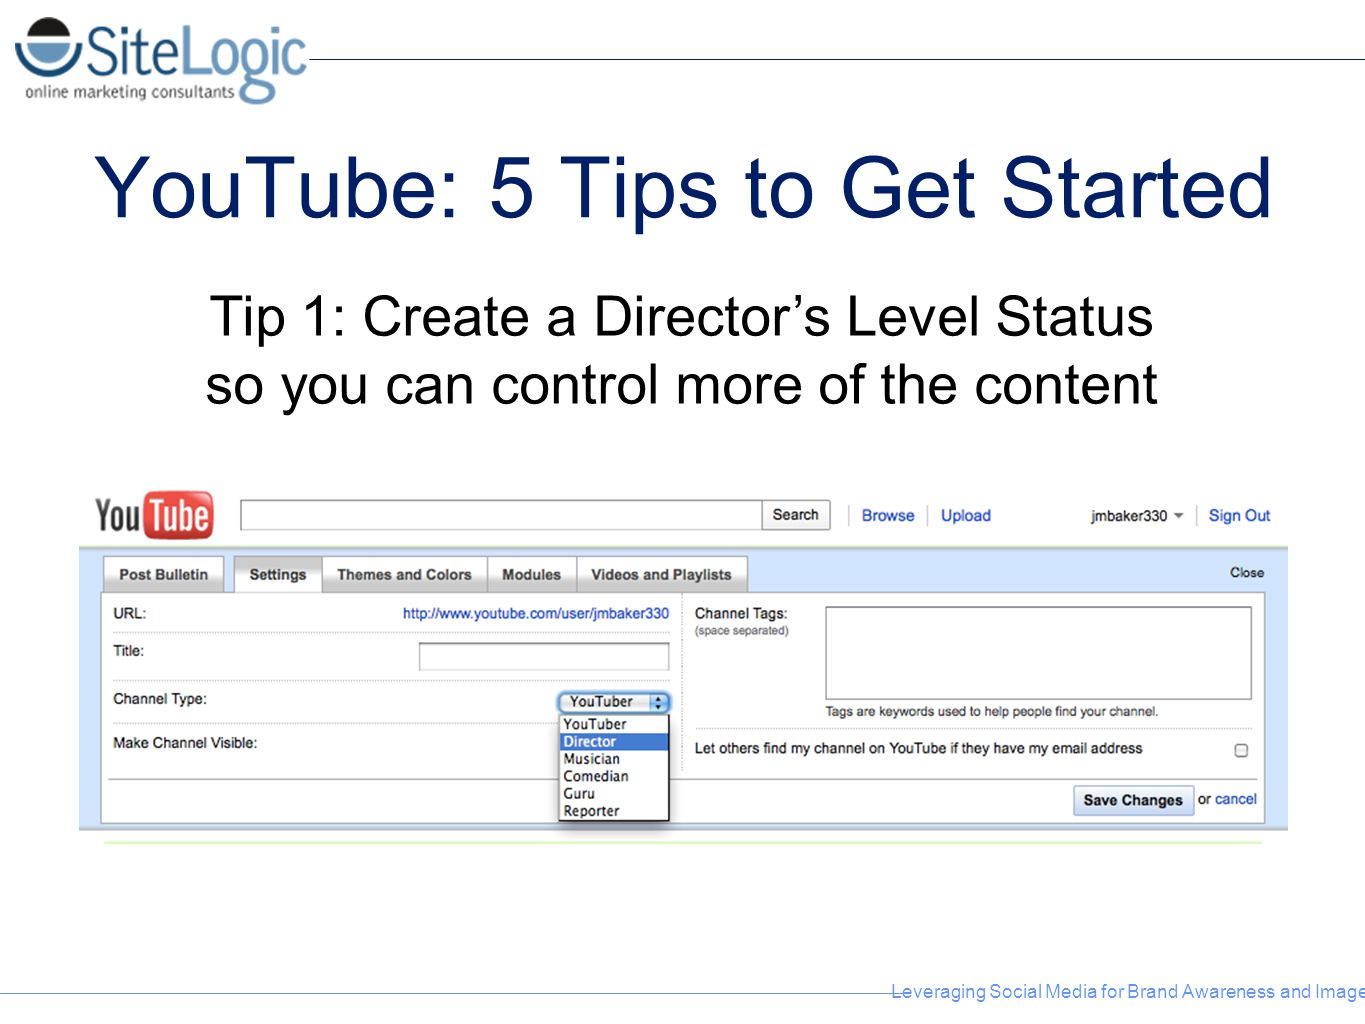 Leveraging Social Media for Brand Awareness and Image YouTube: 5 Tips to Get Started Tip 1: Create a Director's Level Status so you can control more o